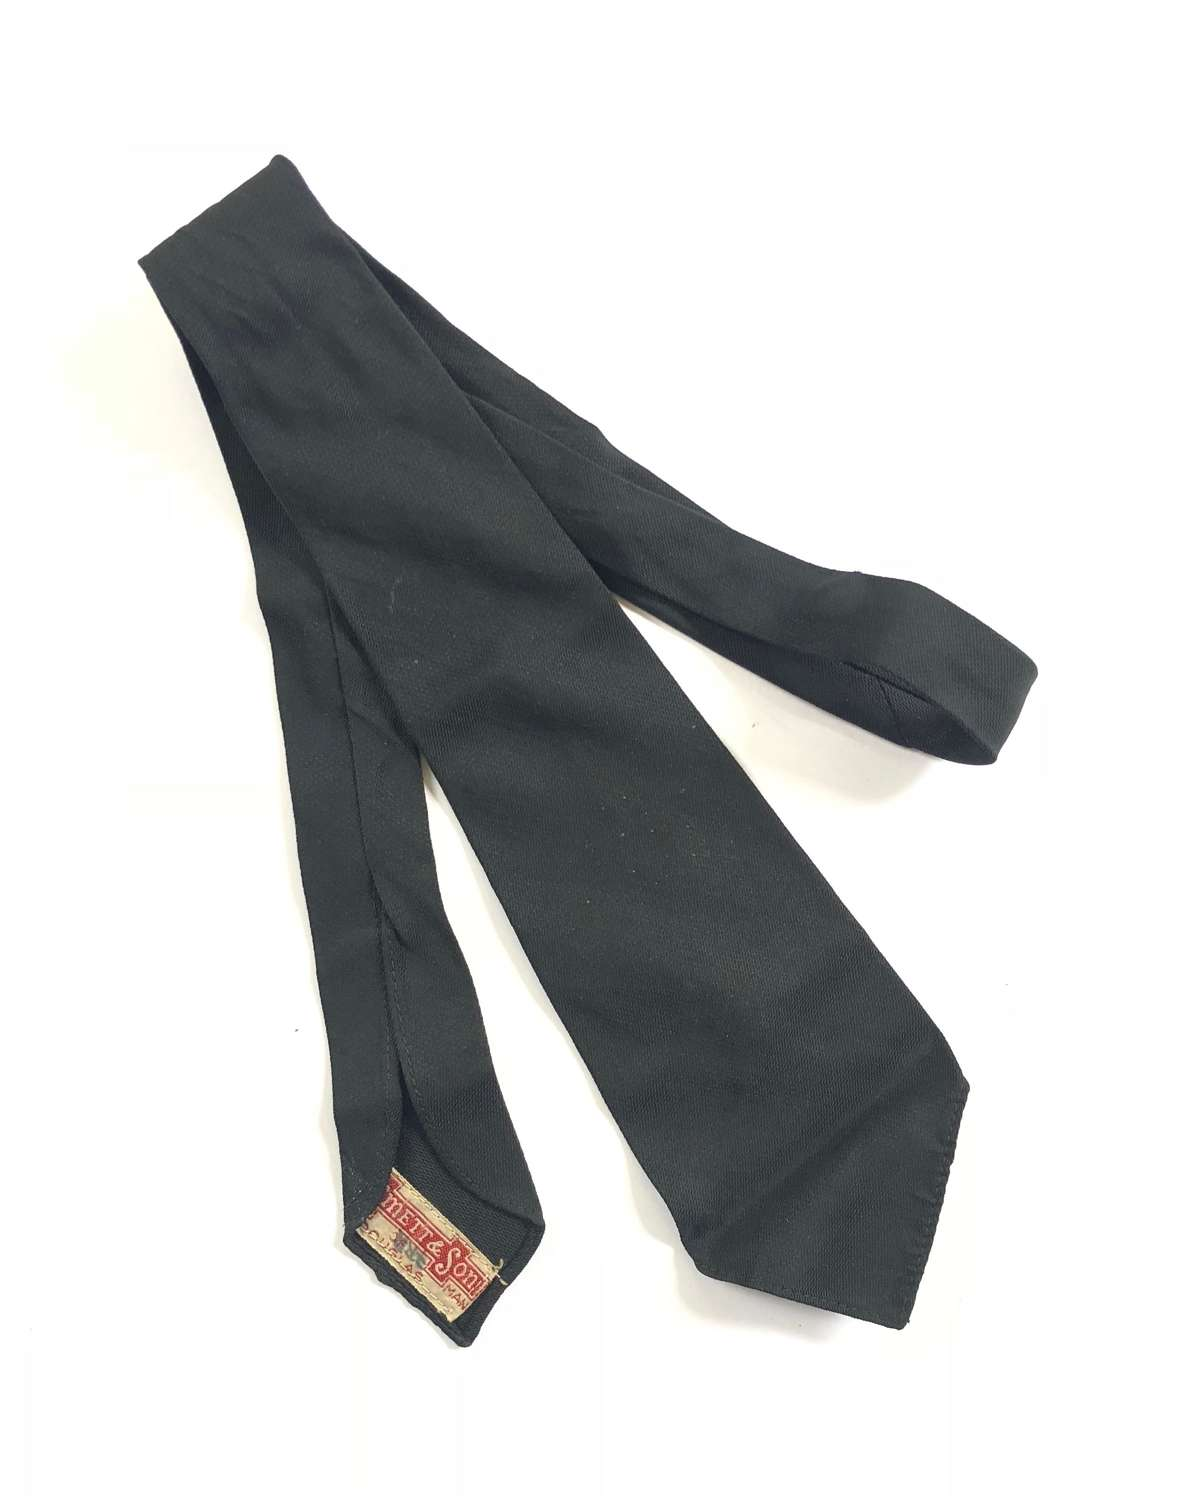 WW2 Period Royal Air Force or Royal Navy Office's Black Tie.